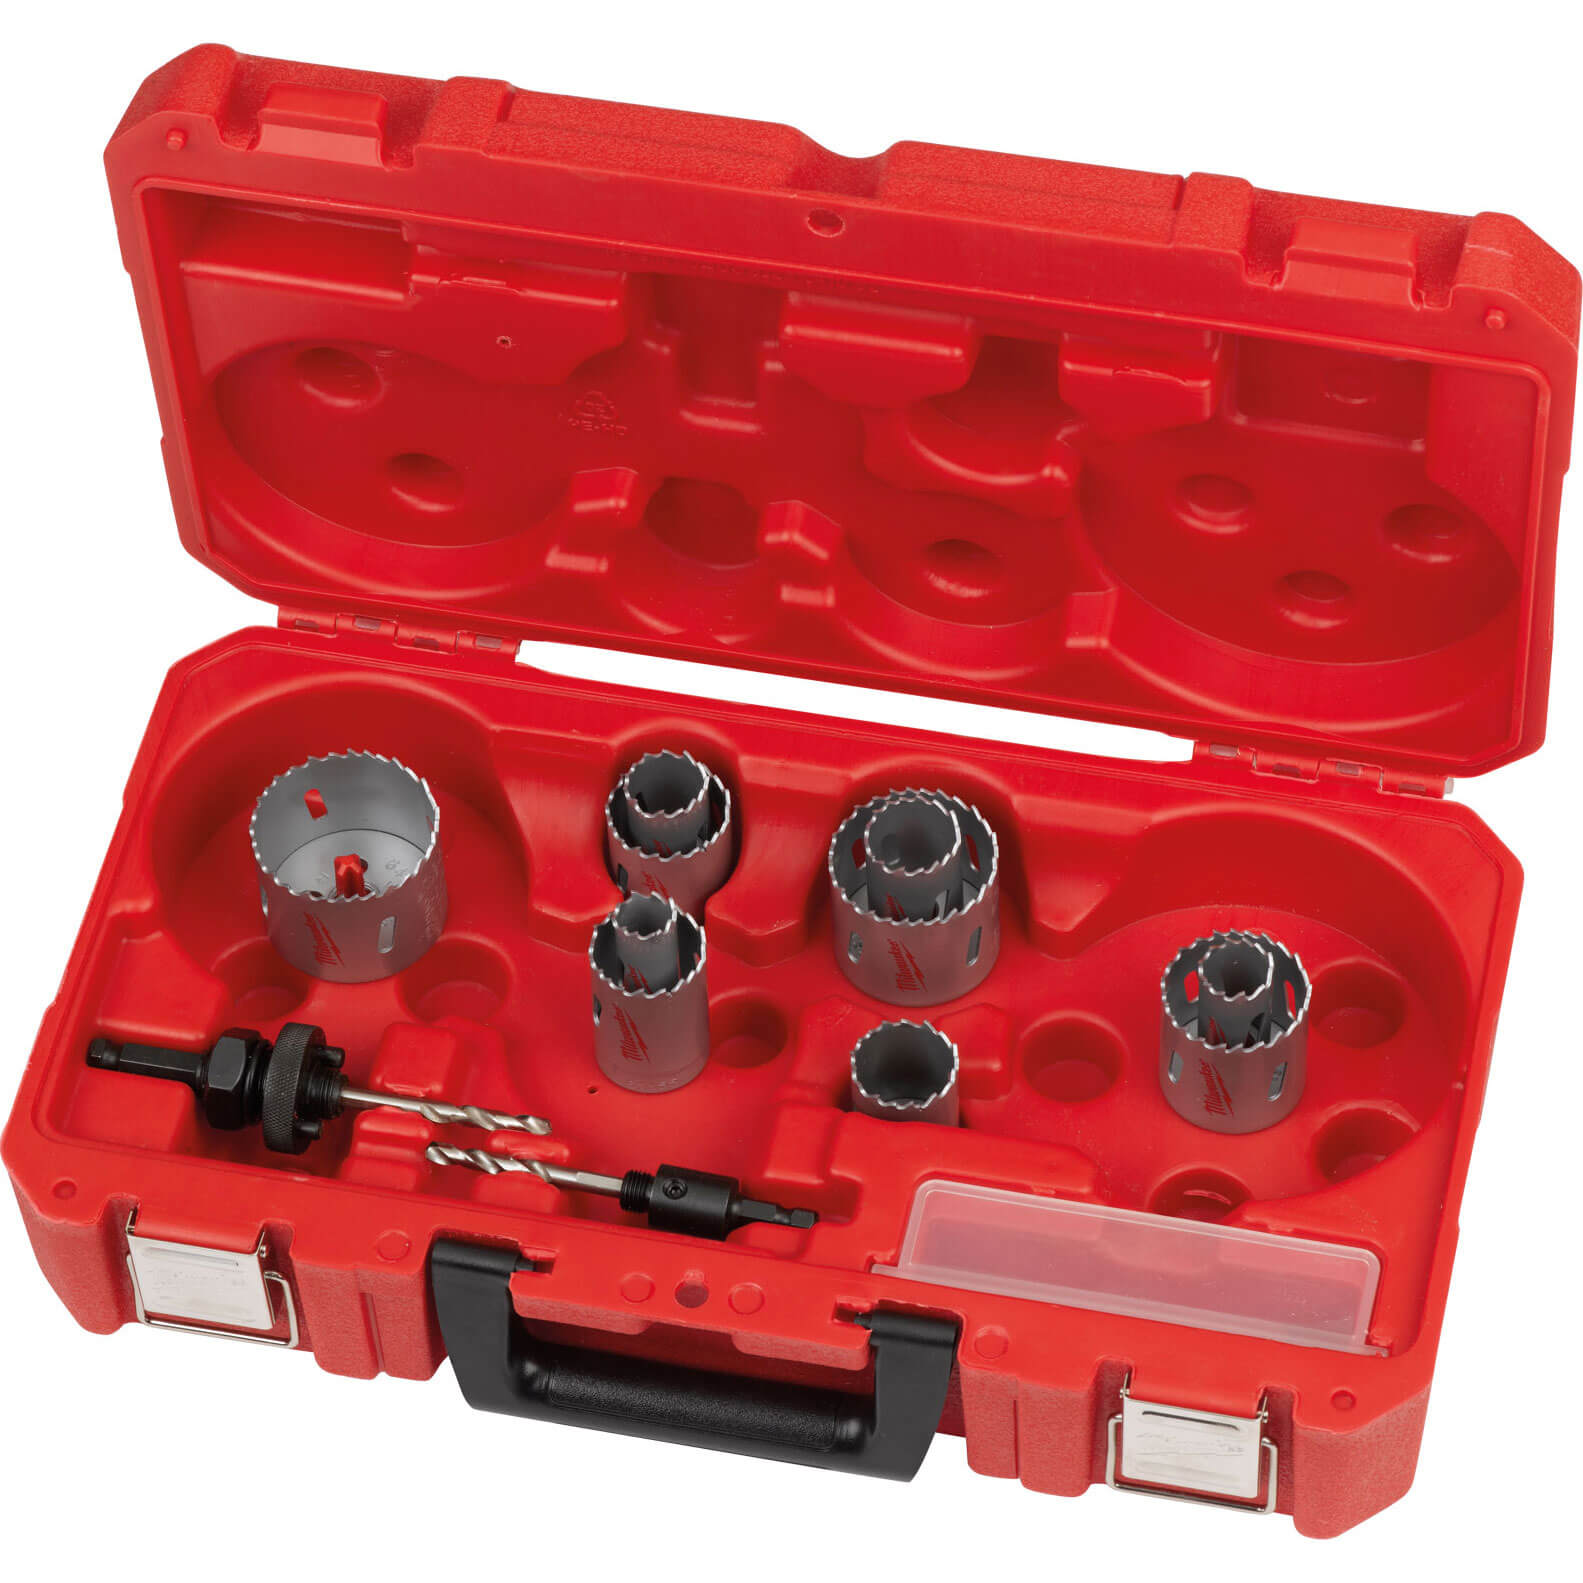 Image of Milwaukee 14 Piece Contrator Bi-Metal Holesaw Set